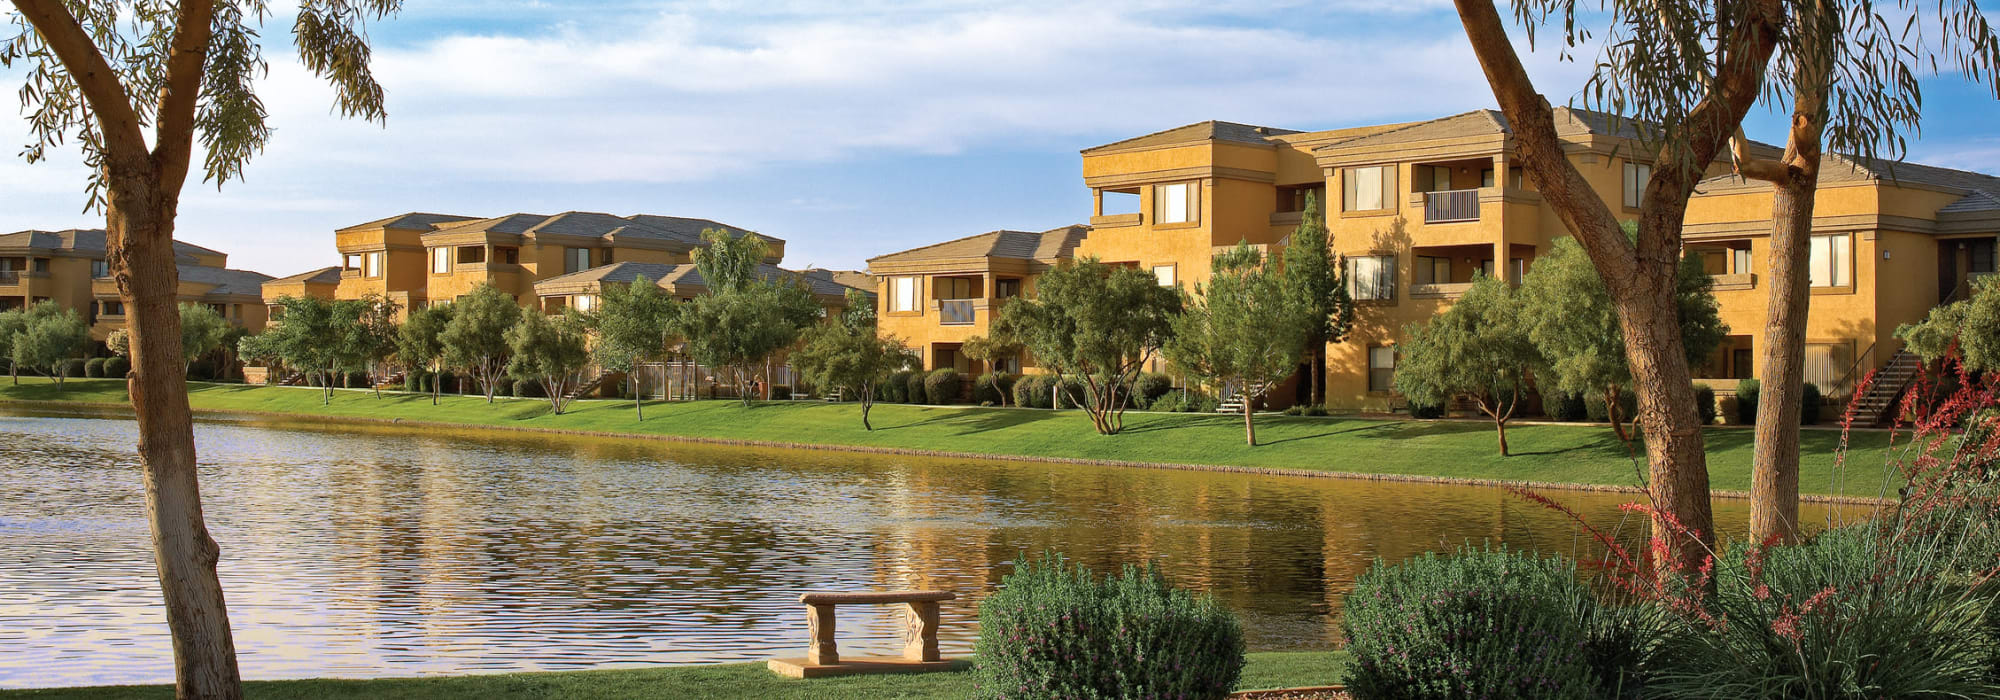 Lakeside view of apartments at Waterside at Ocotillo in Chandler, Arizona